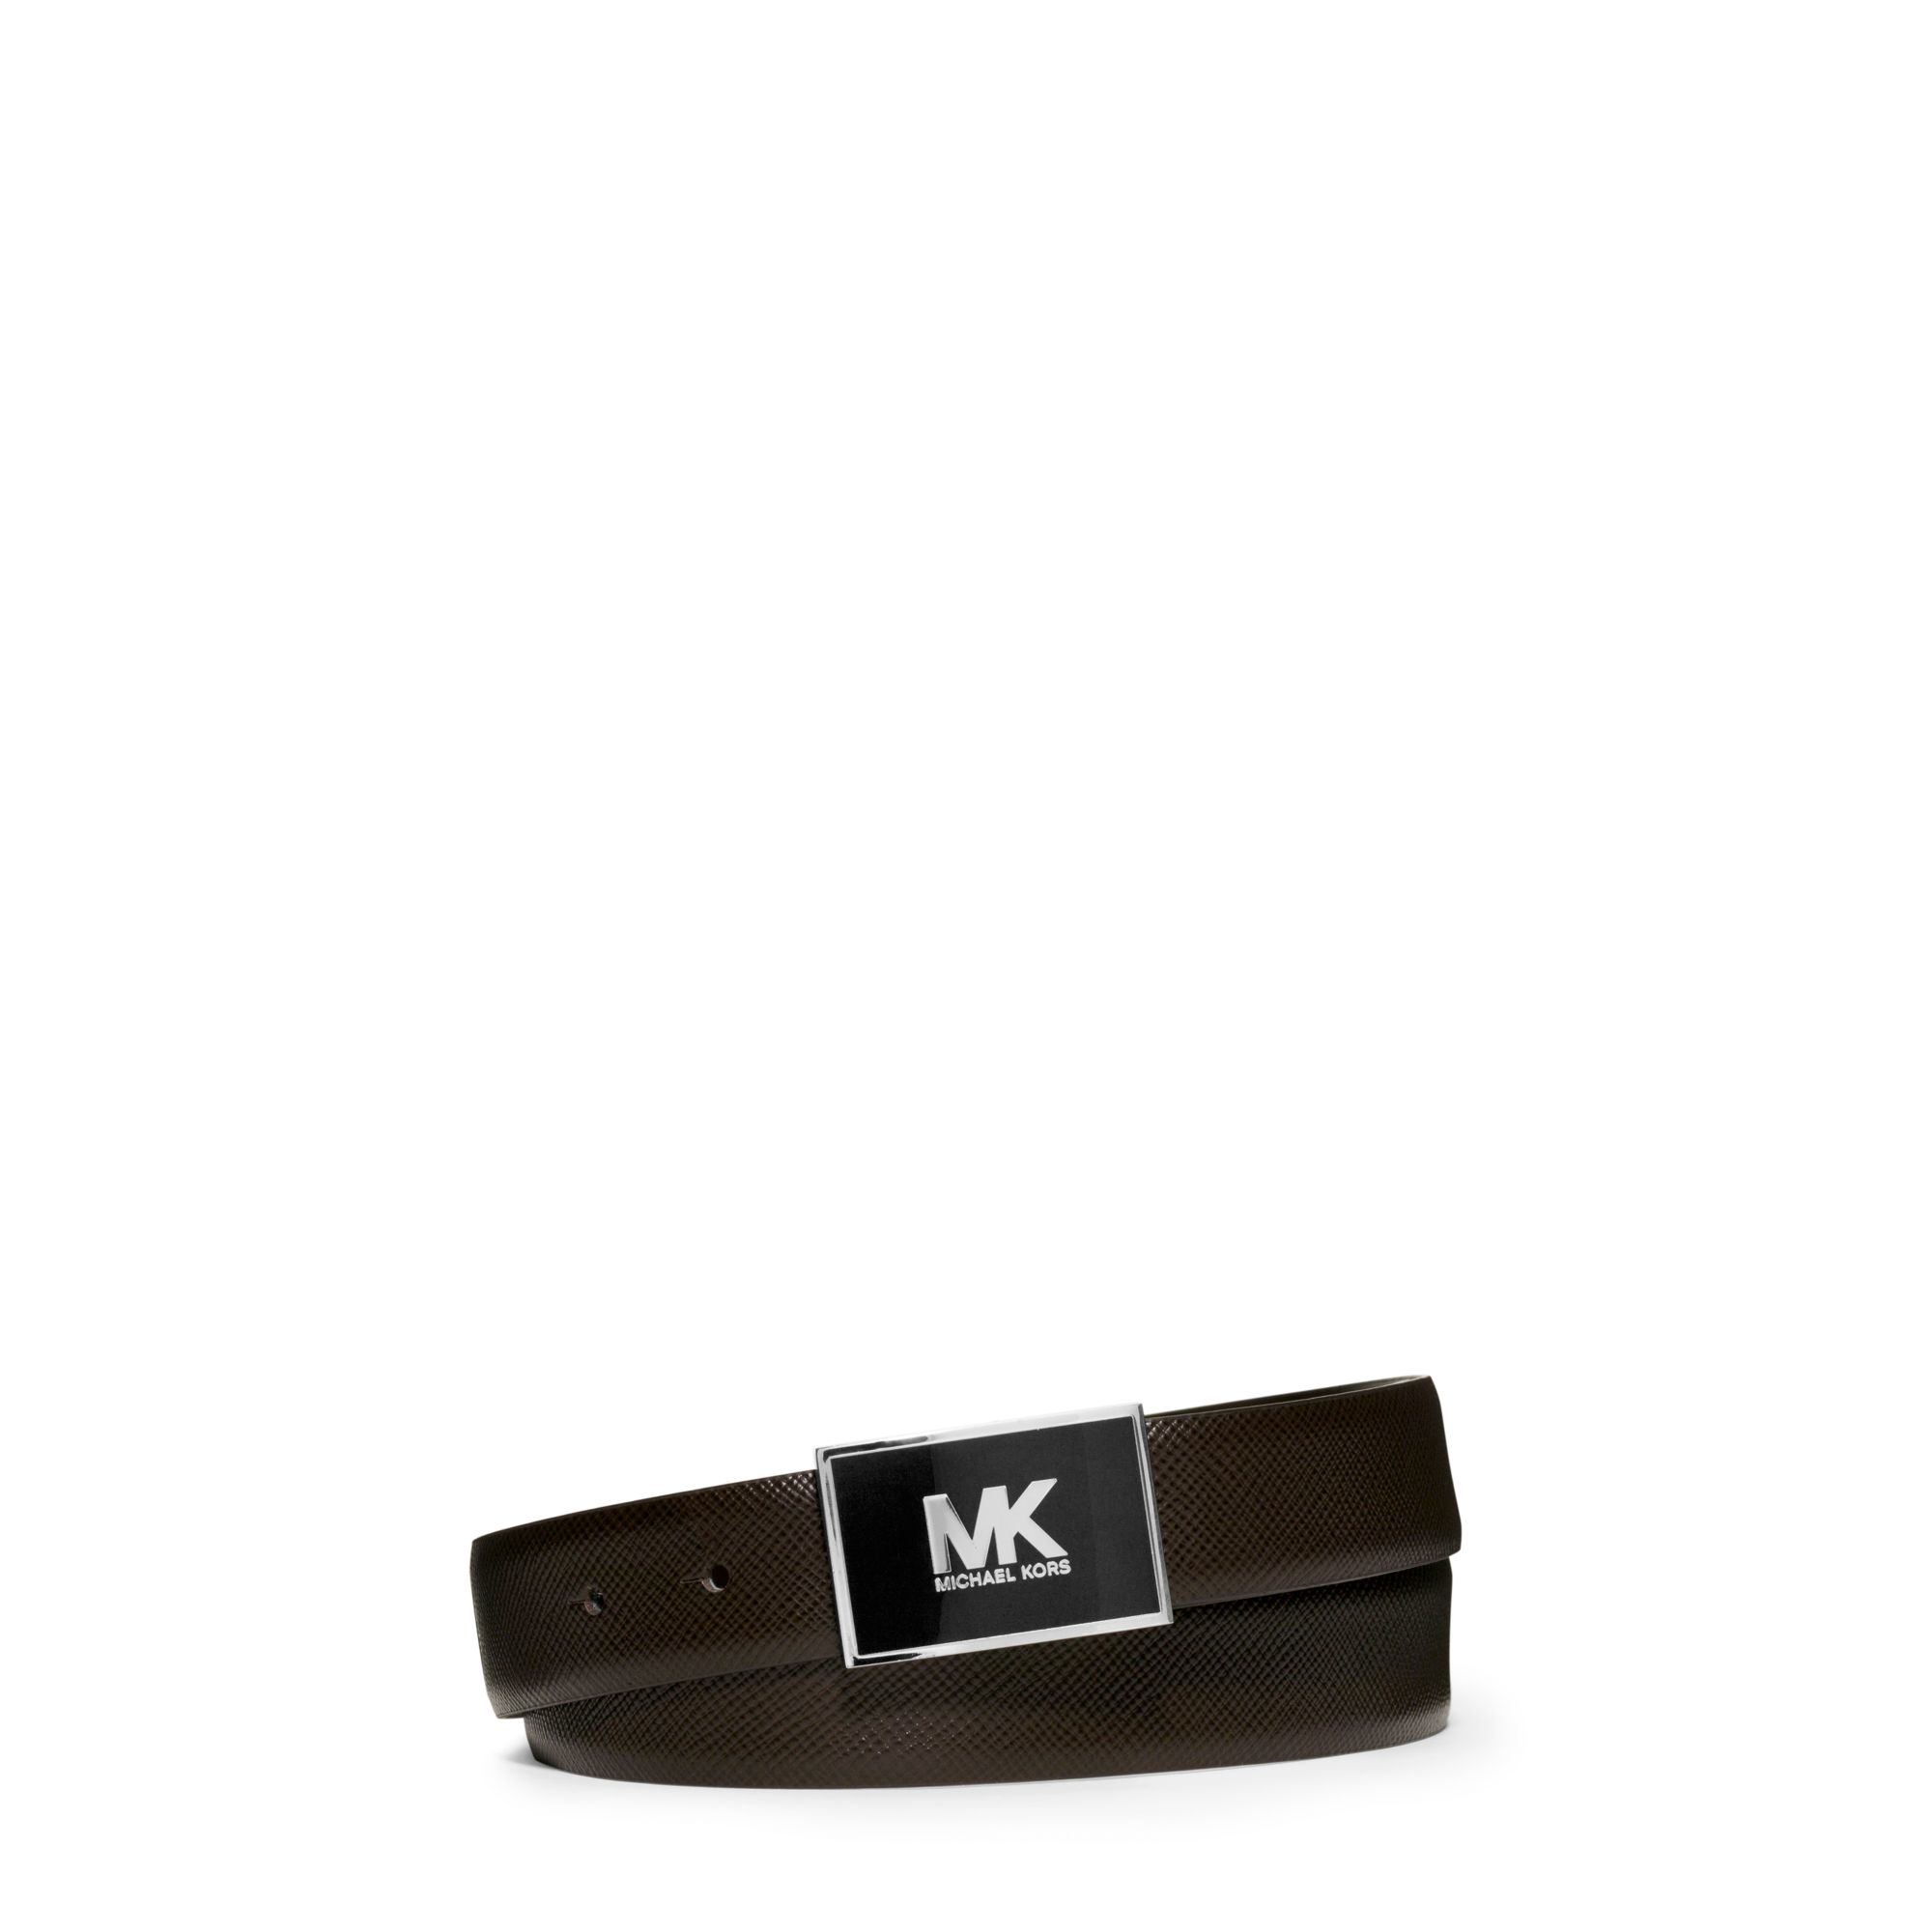 michael kors leather logo belt in brown for lyst